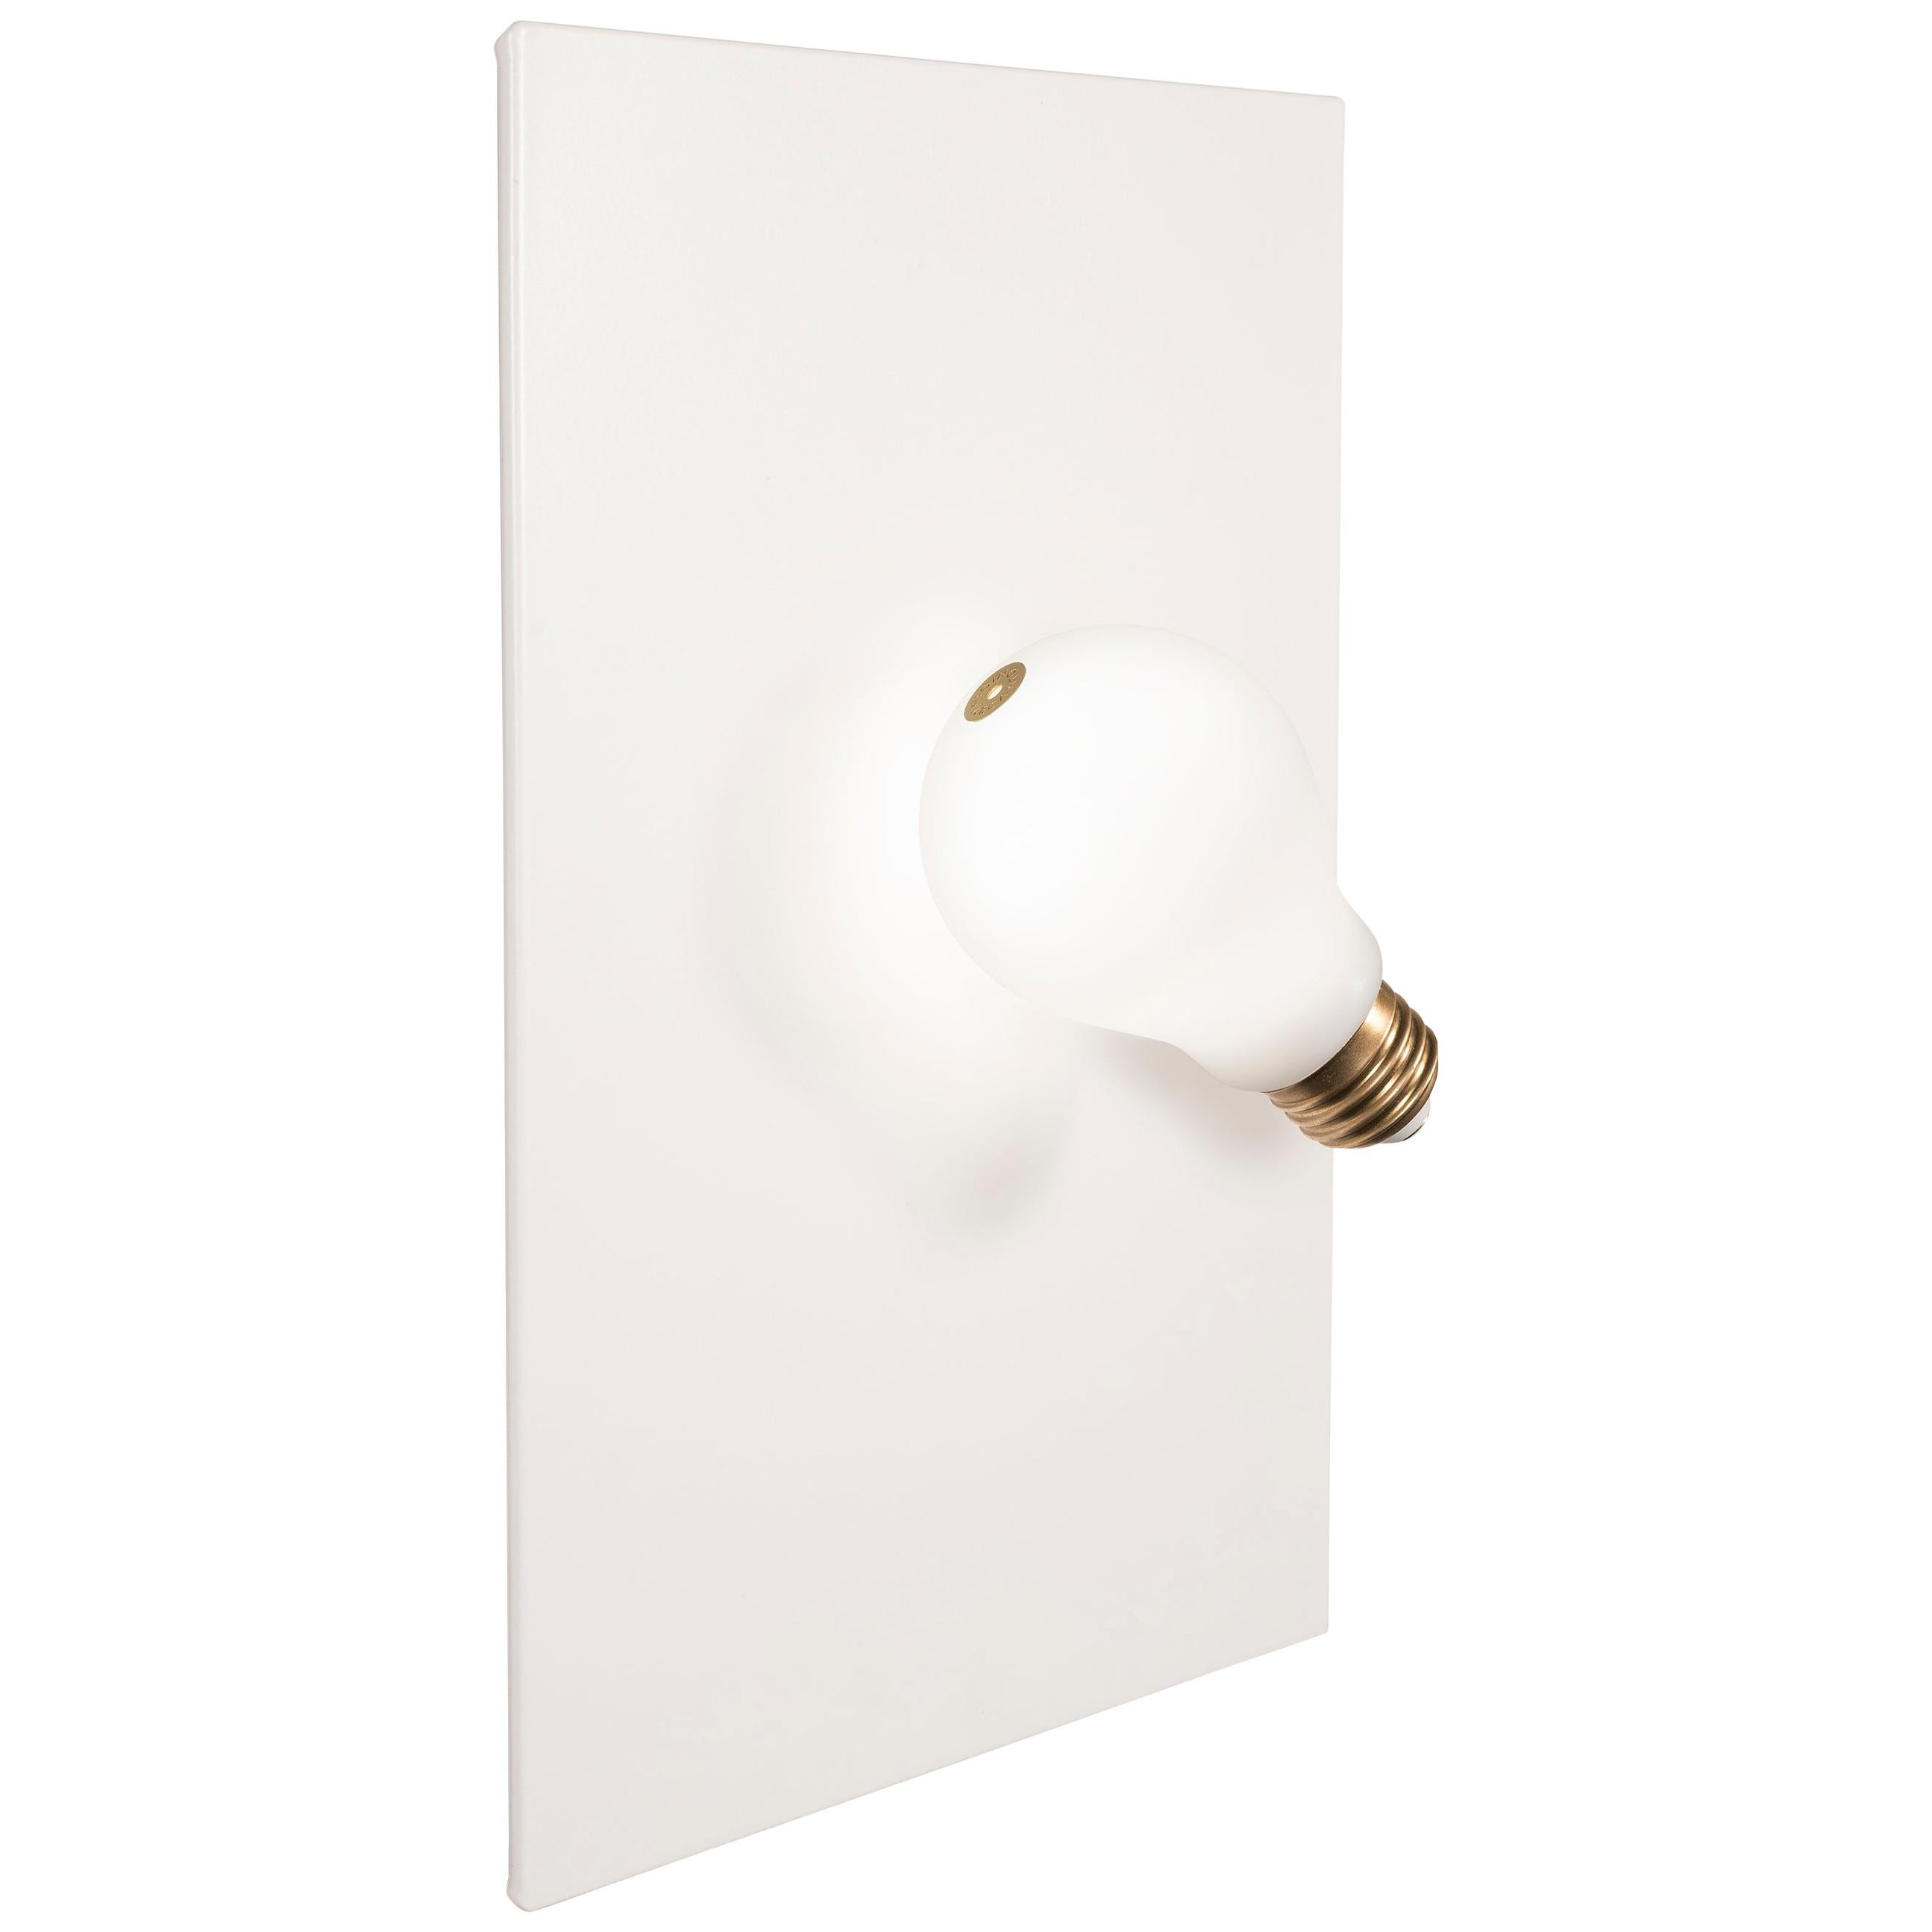 Idea Applique Wall Sconce White by Slamp